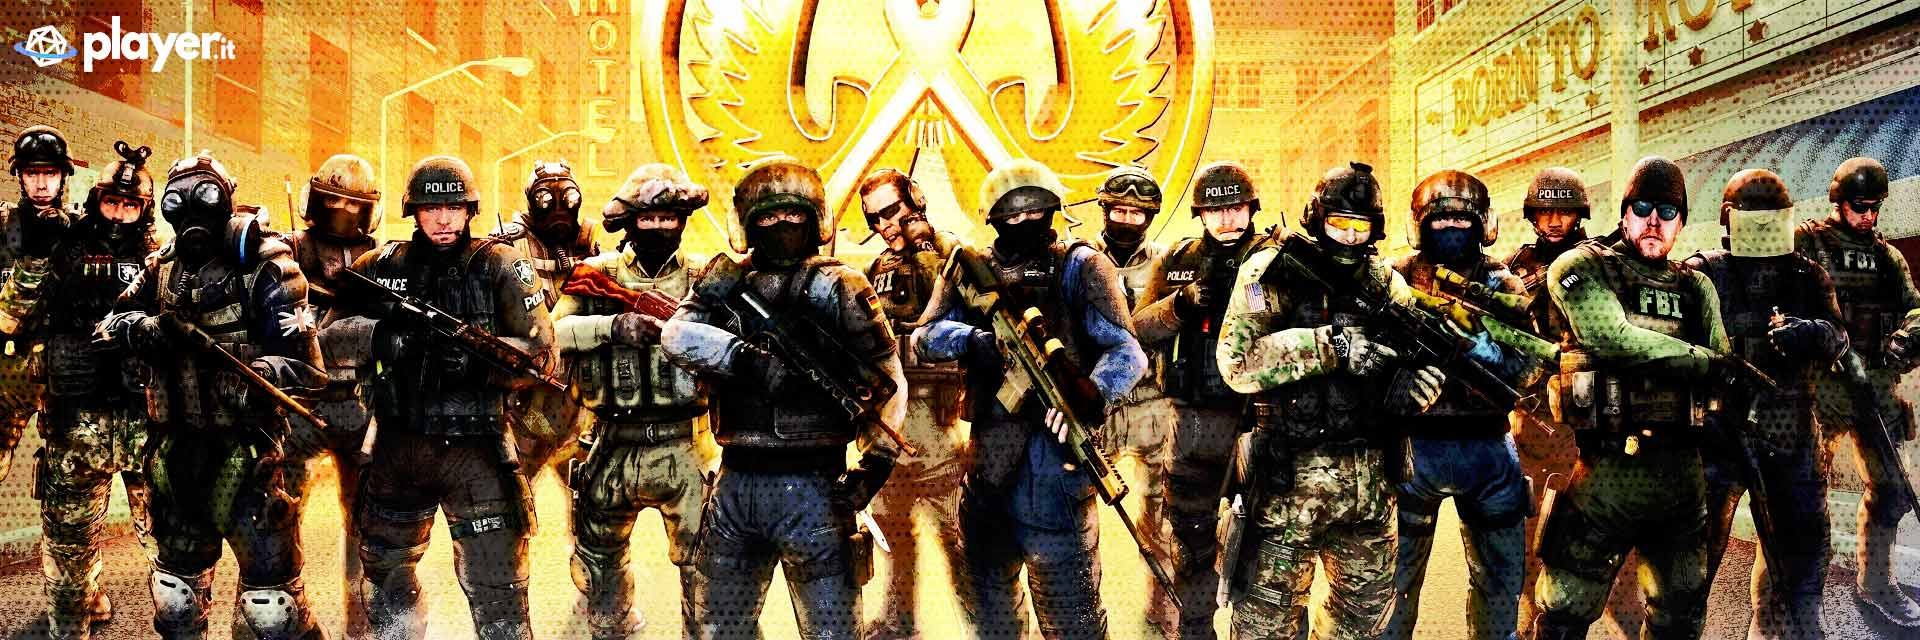 Counter-Strike: Global Offensive wallpaper in hd